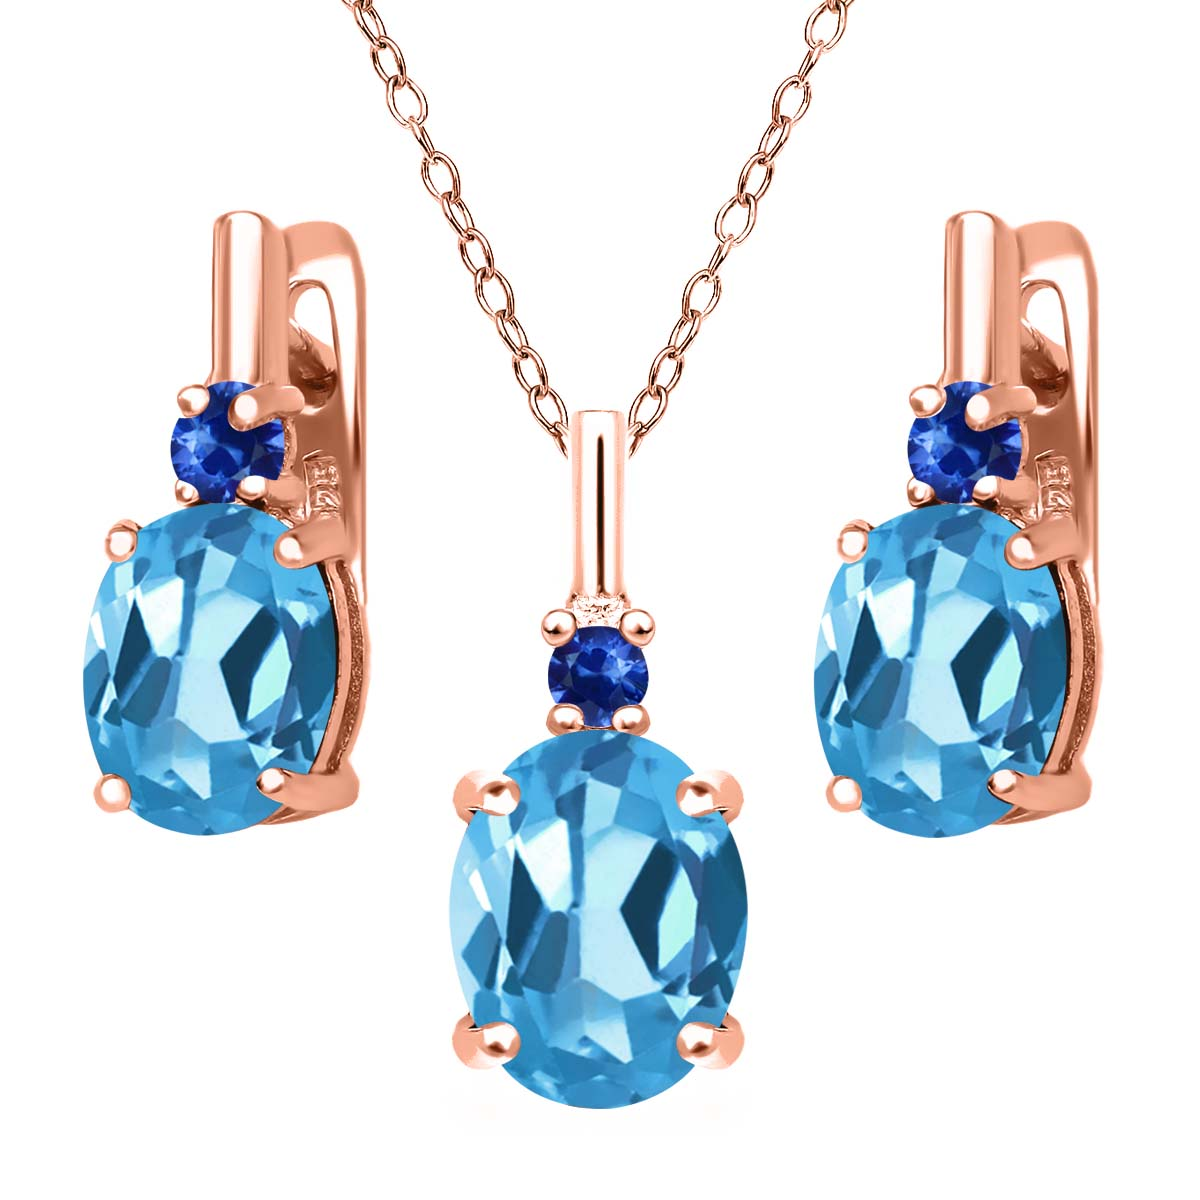 6.68 Ct Swiss Blue Topaz Blue Sapphire 18K Rose Gold Plated Silver Pendant Earrings Set by